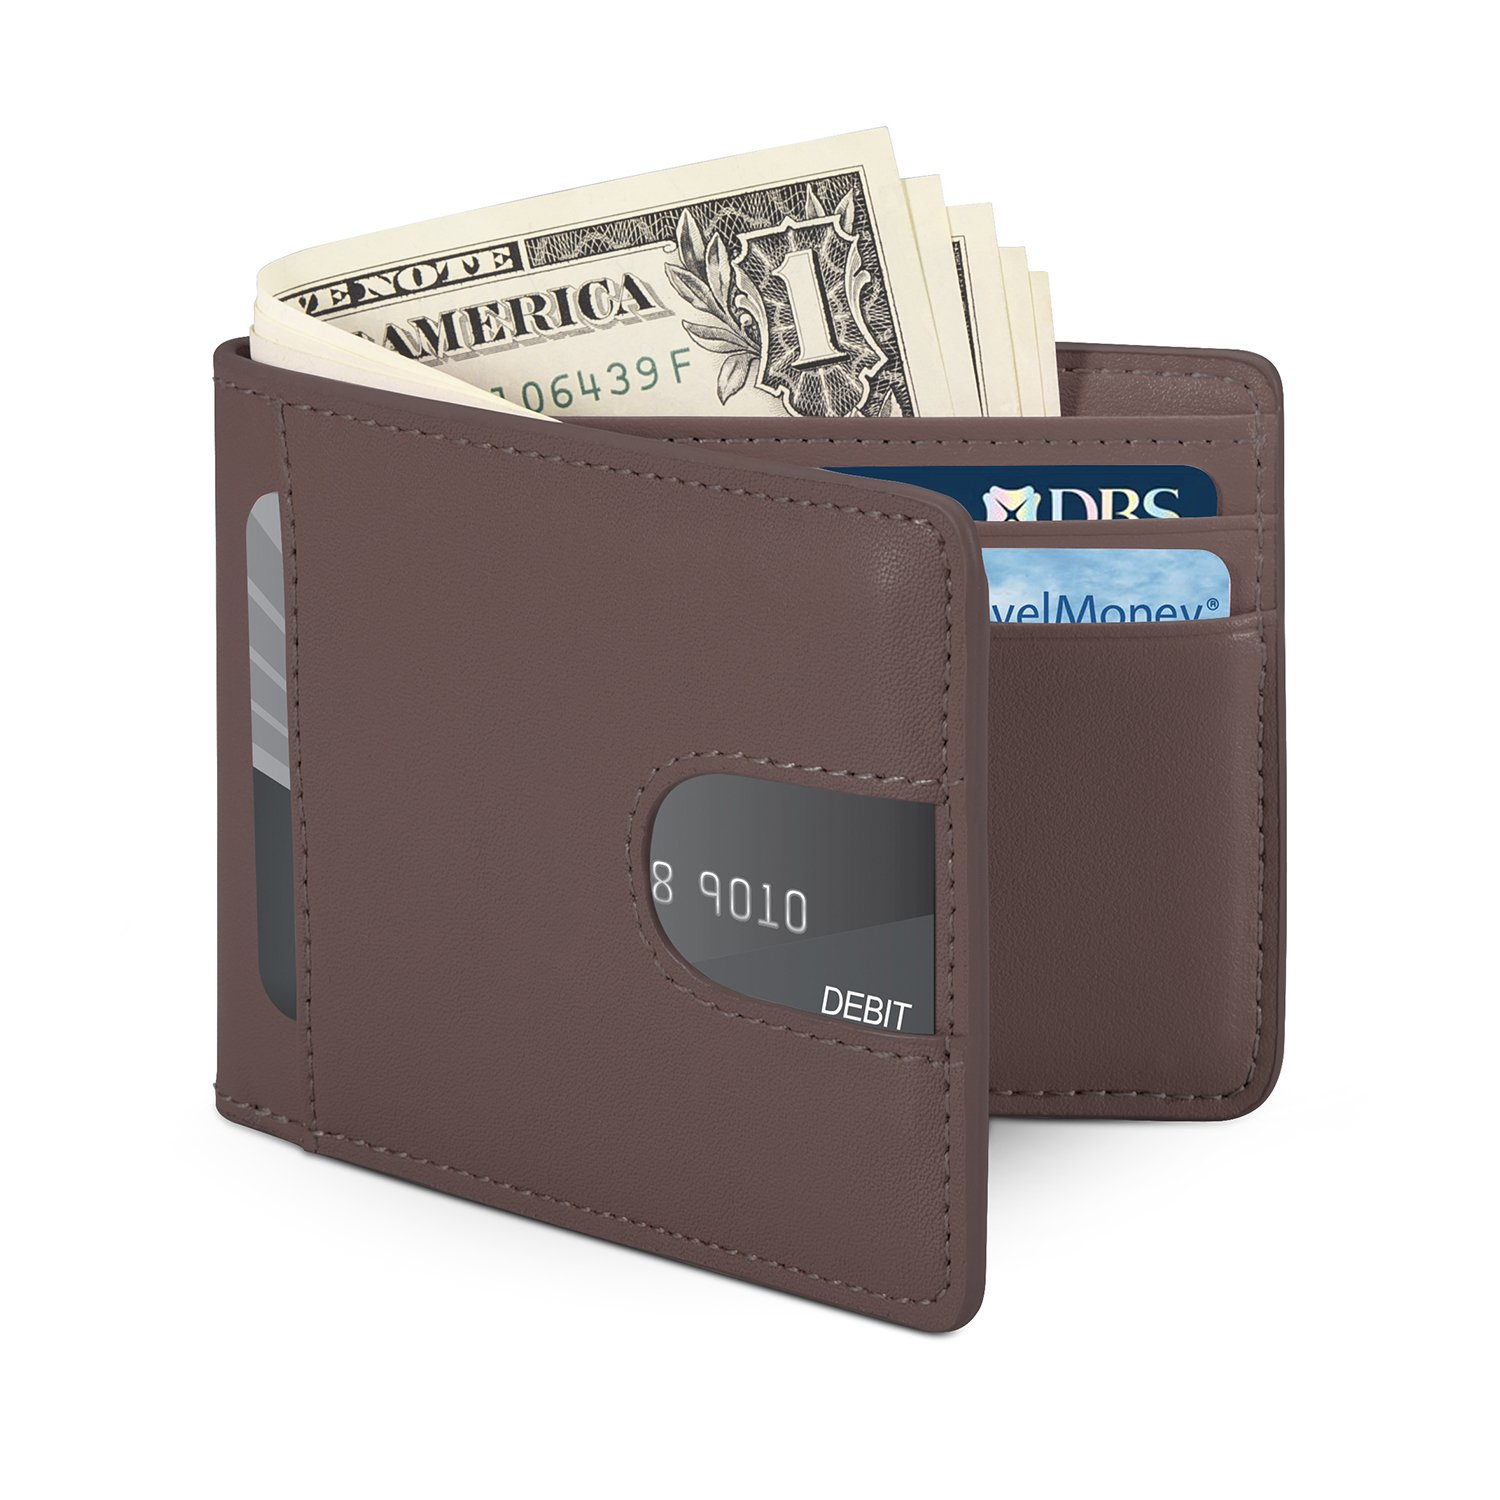 Men Minimalist Front Pocket Wallet RFID Blocking Billfold Slim Grained Leather Wallet for Credit Cards Holder and Cash-Coffee